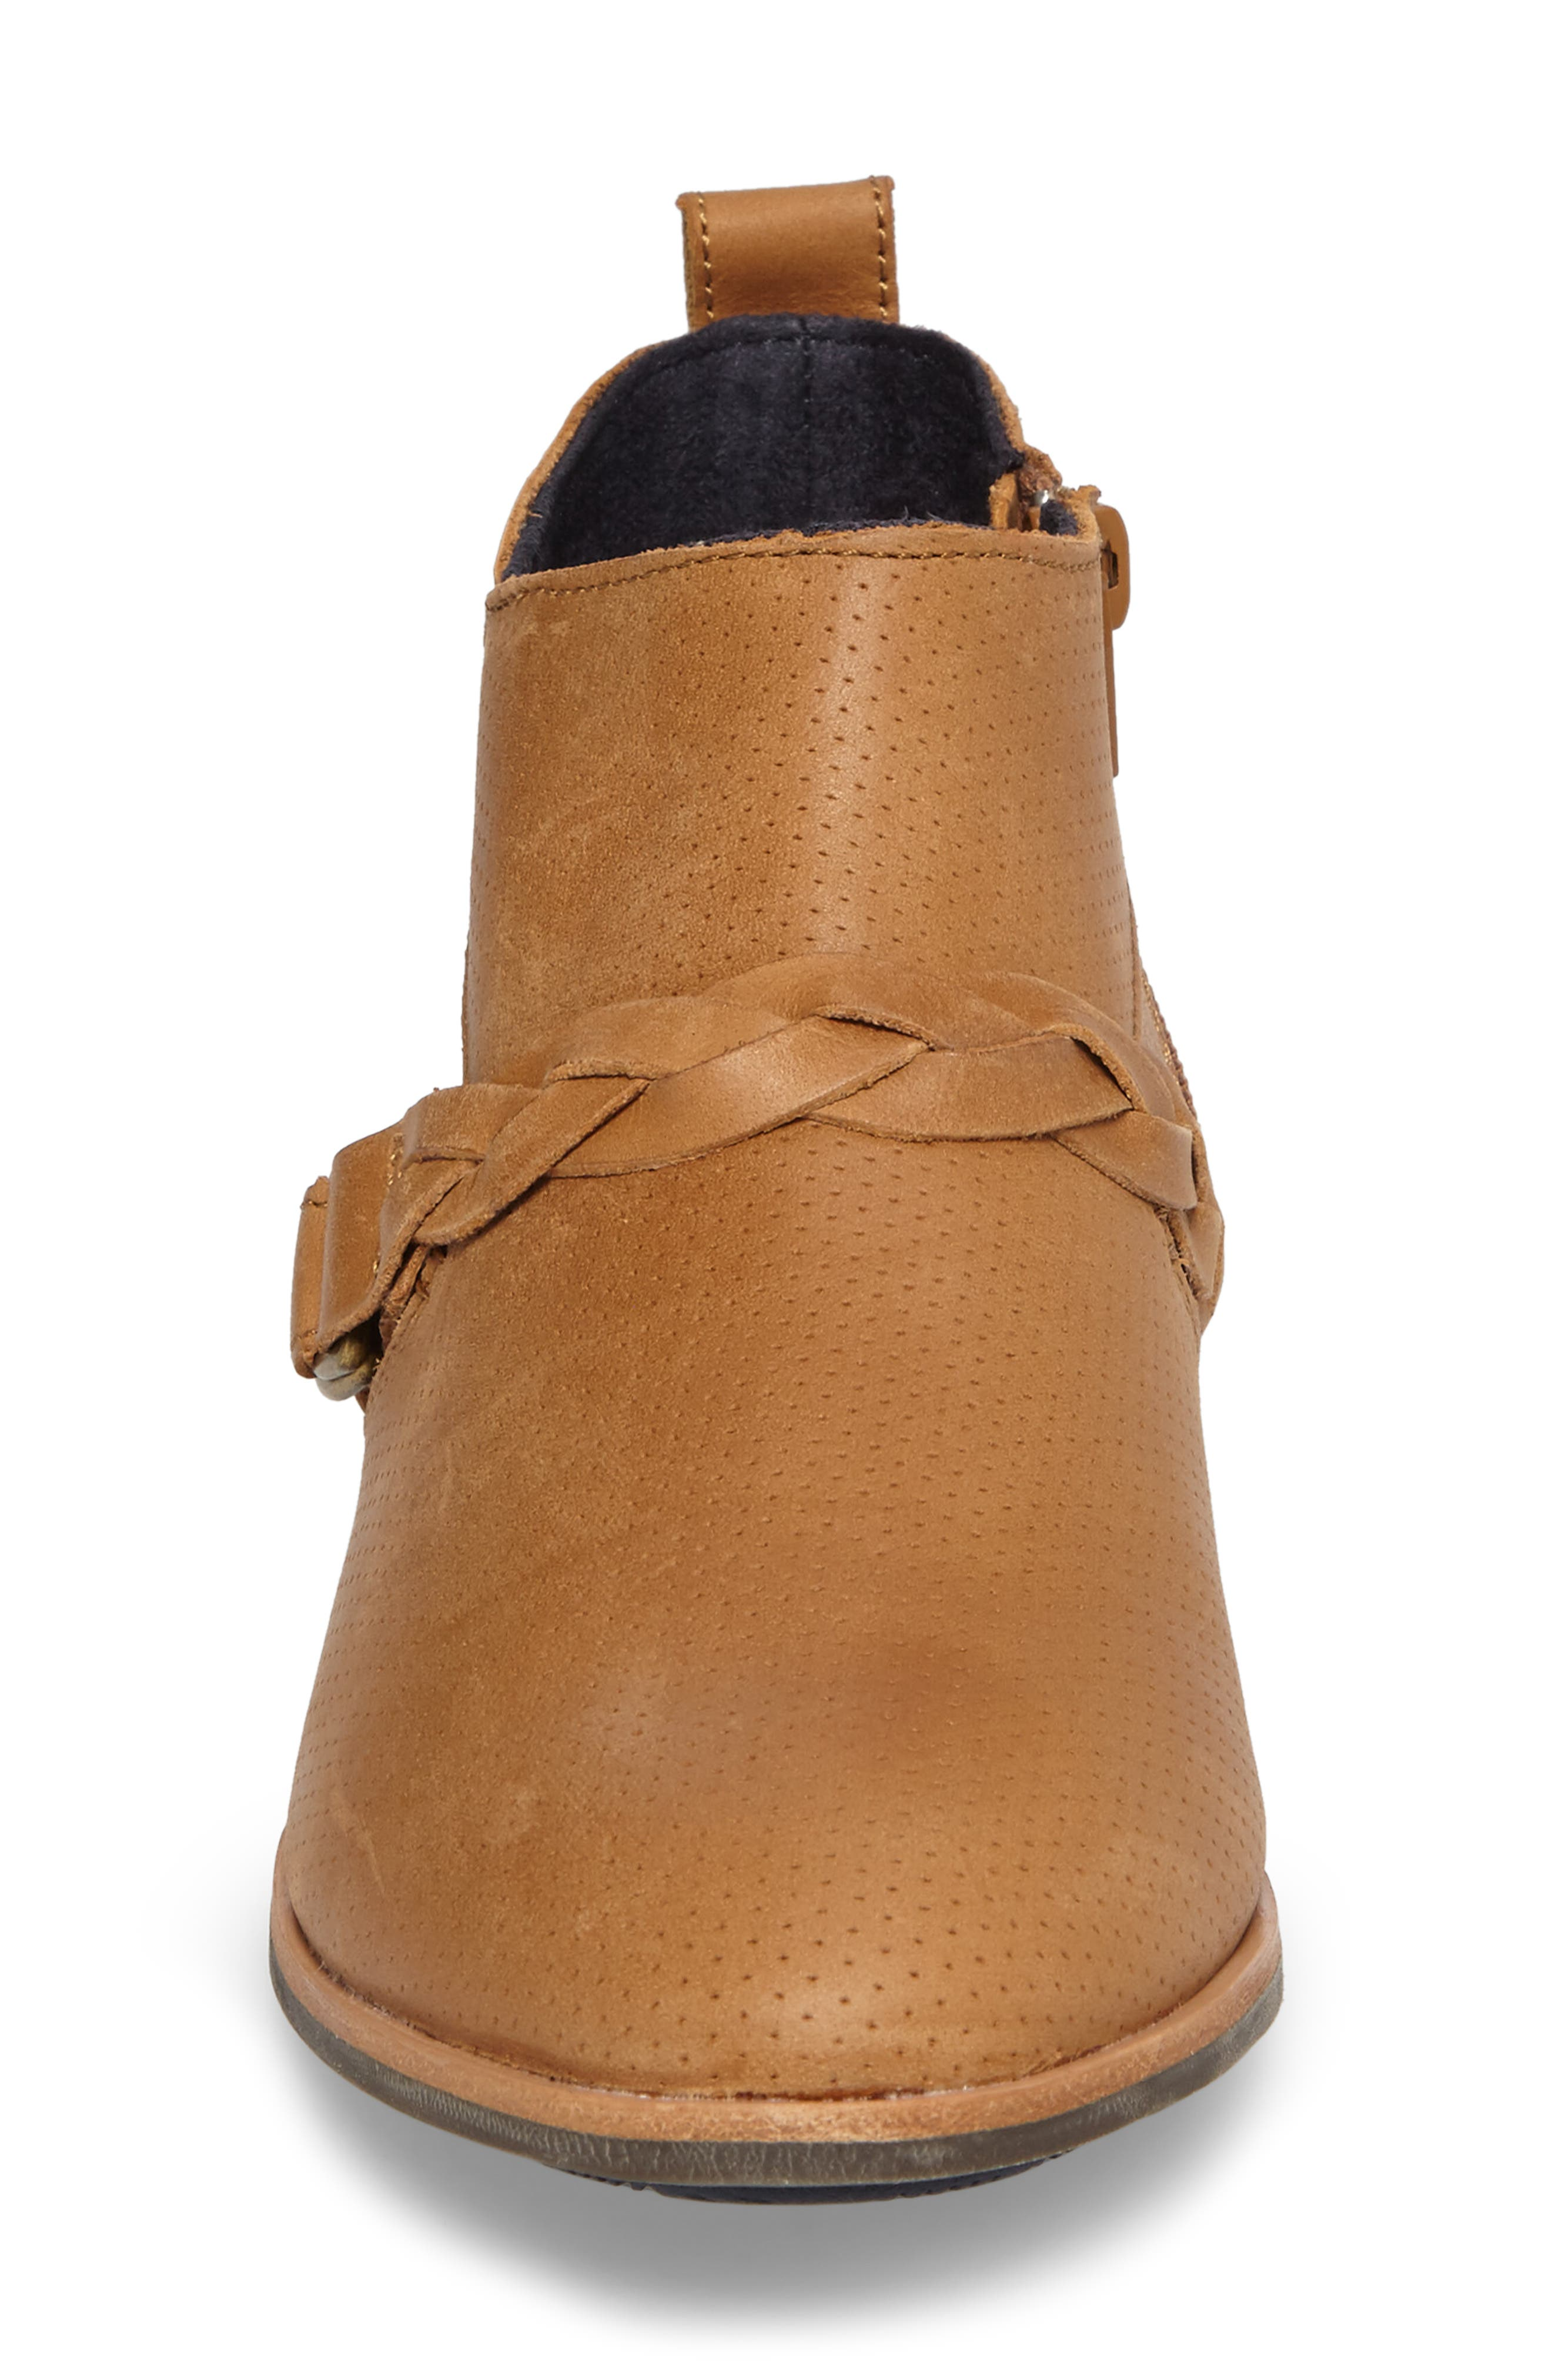 Ho'olu Perforated Bootie,                             Alternate thumbnail 4, color,                             Pecan/ Pecan Leather